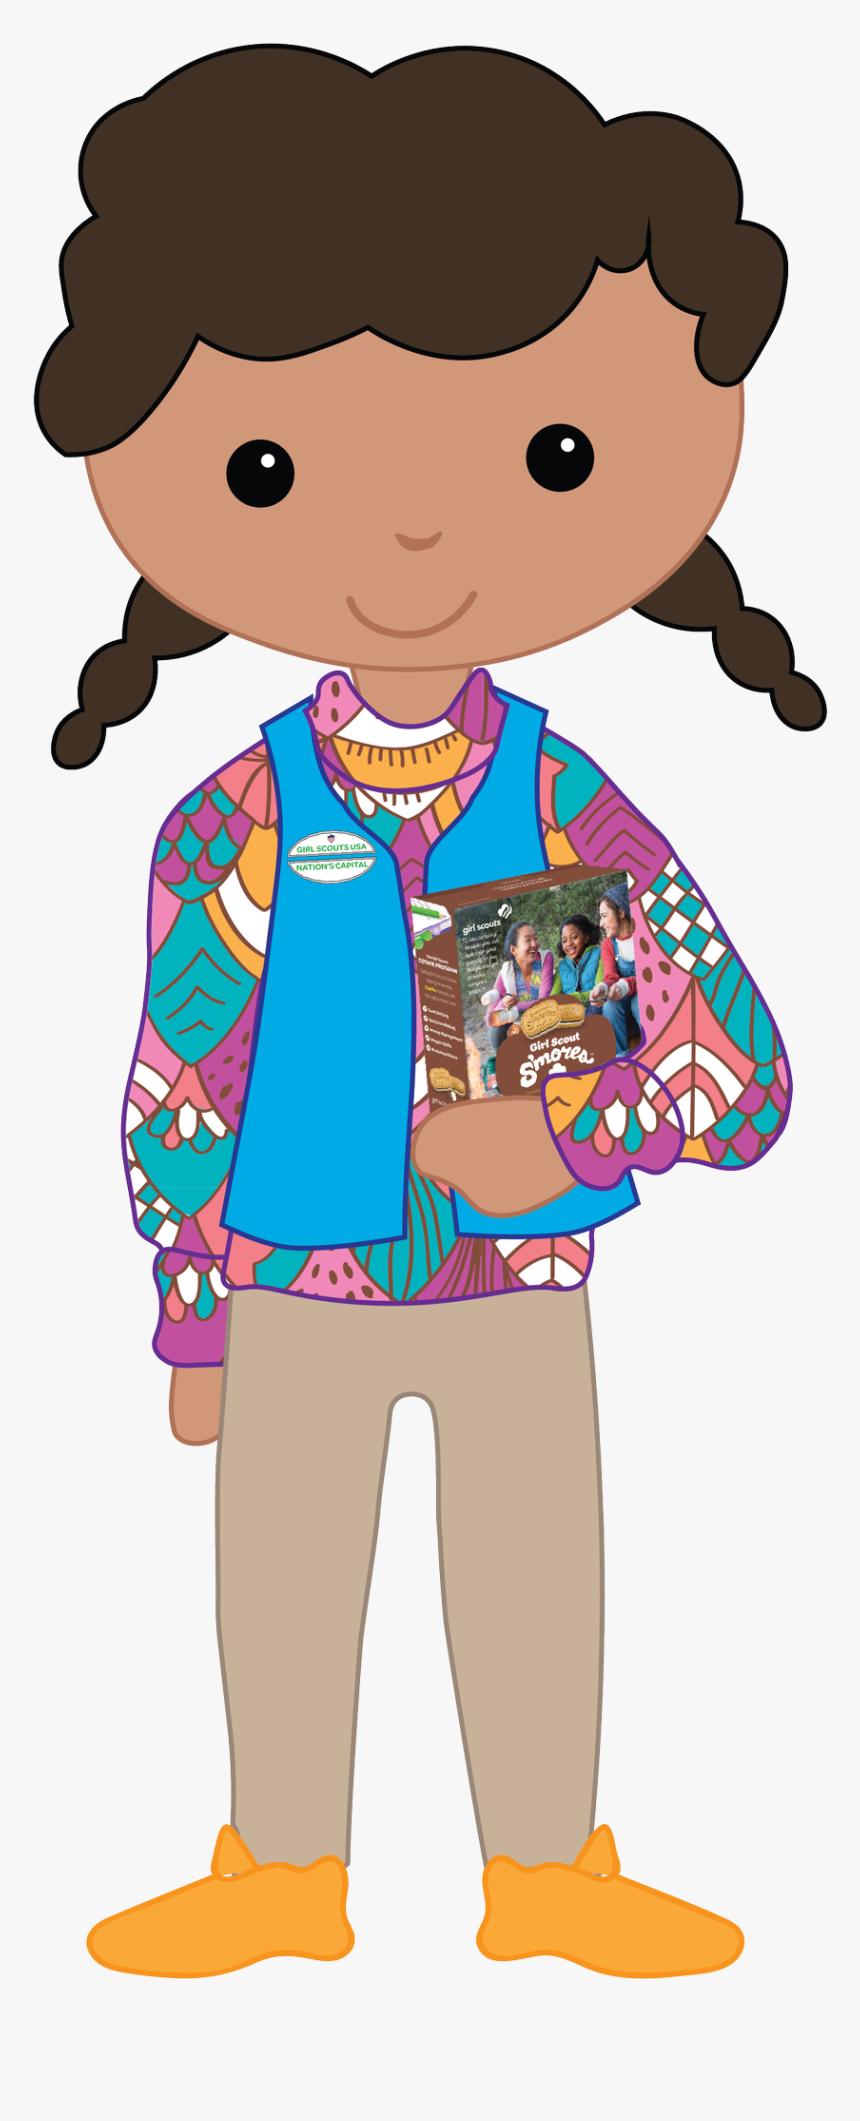 Girl Scout Girl Transparent, HD Png Download, Free Download